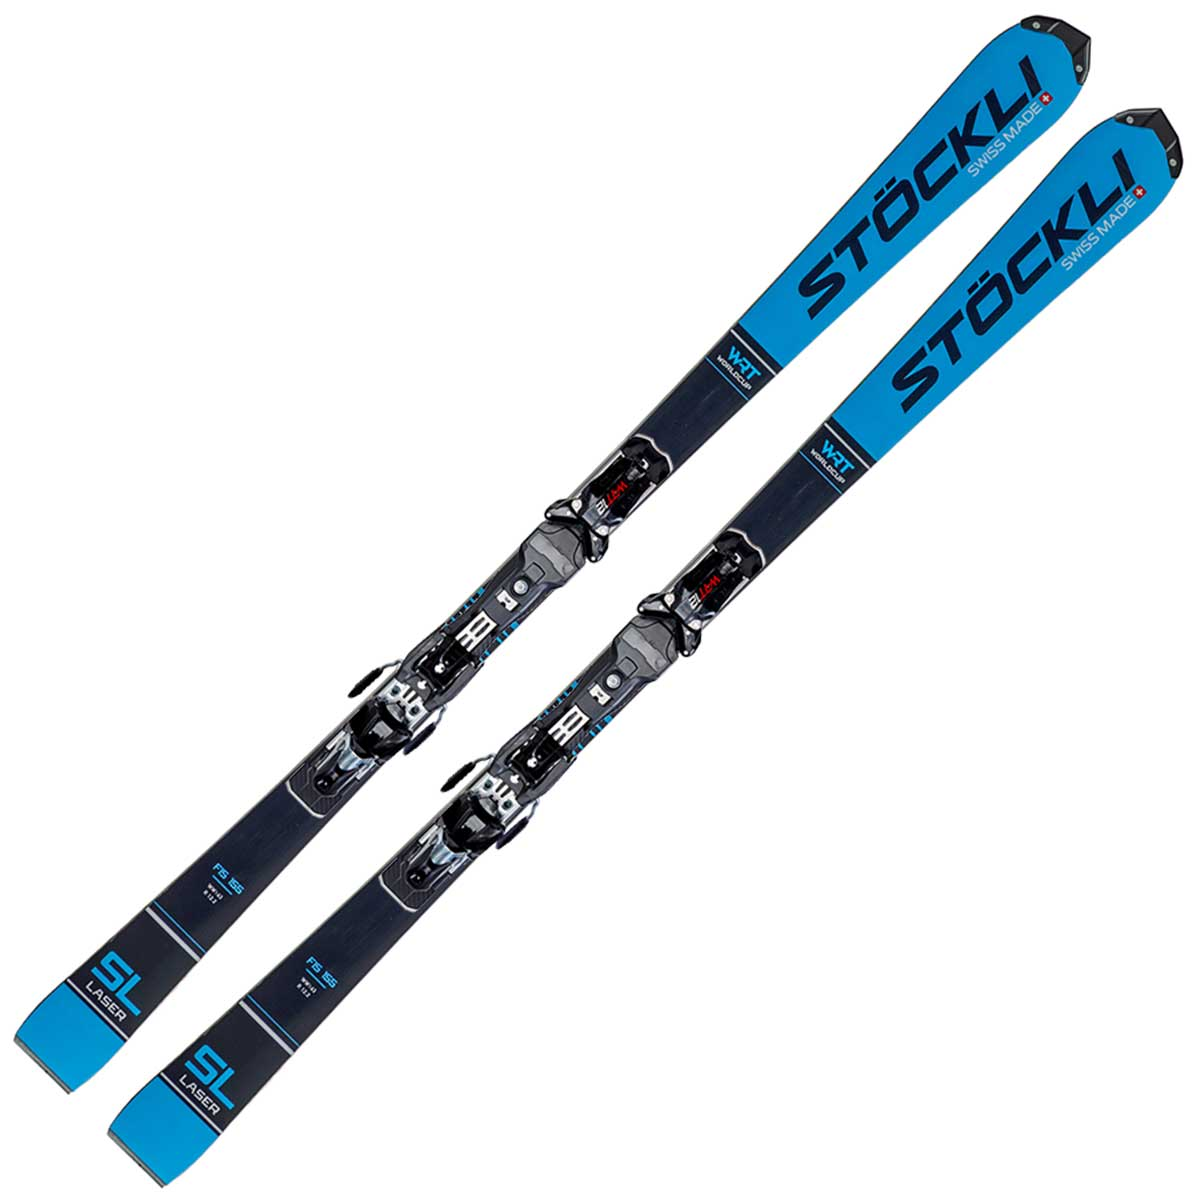 Stockli Laser SL FIS system women's ski in blue